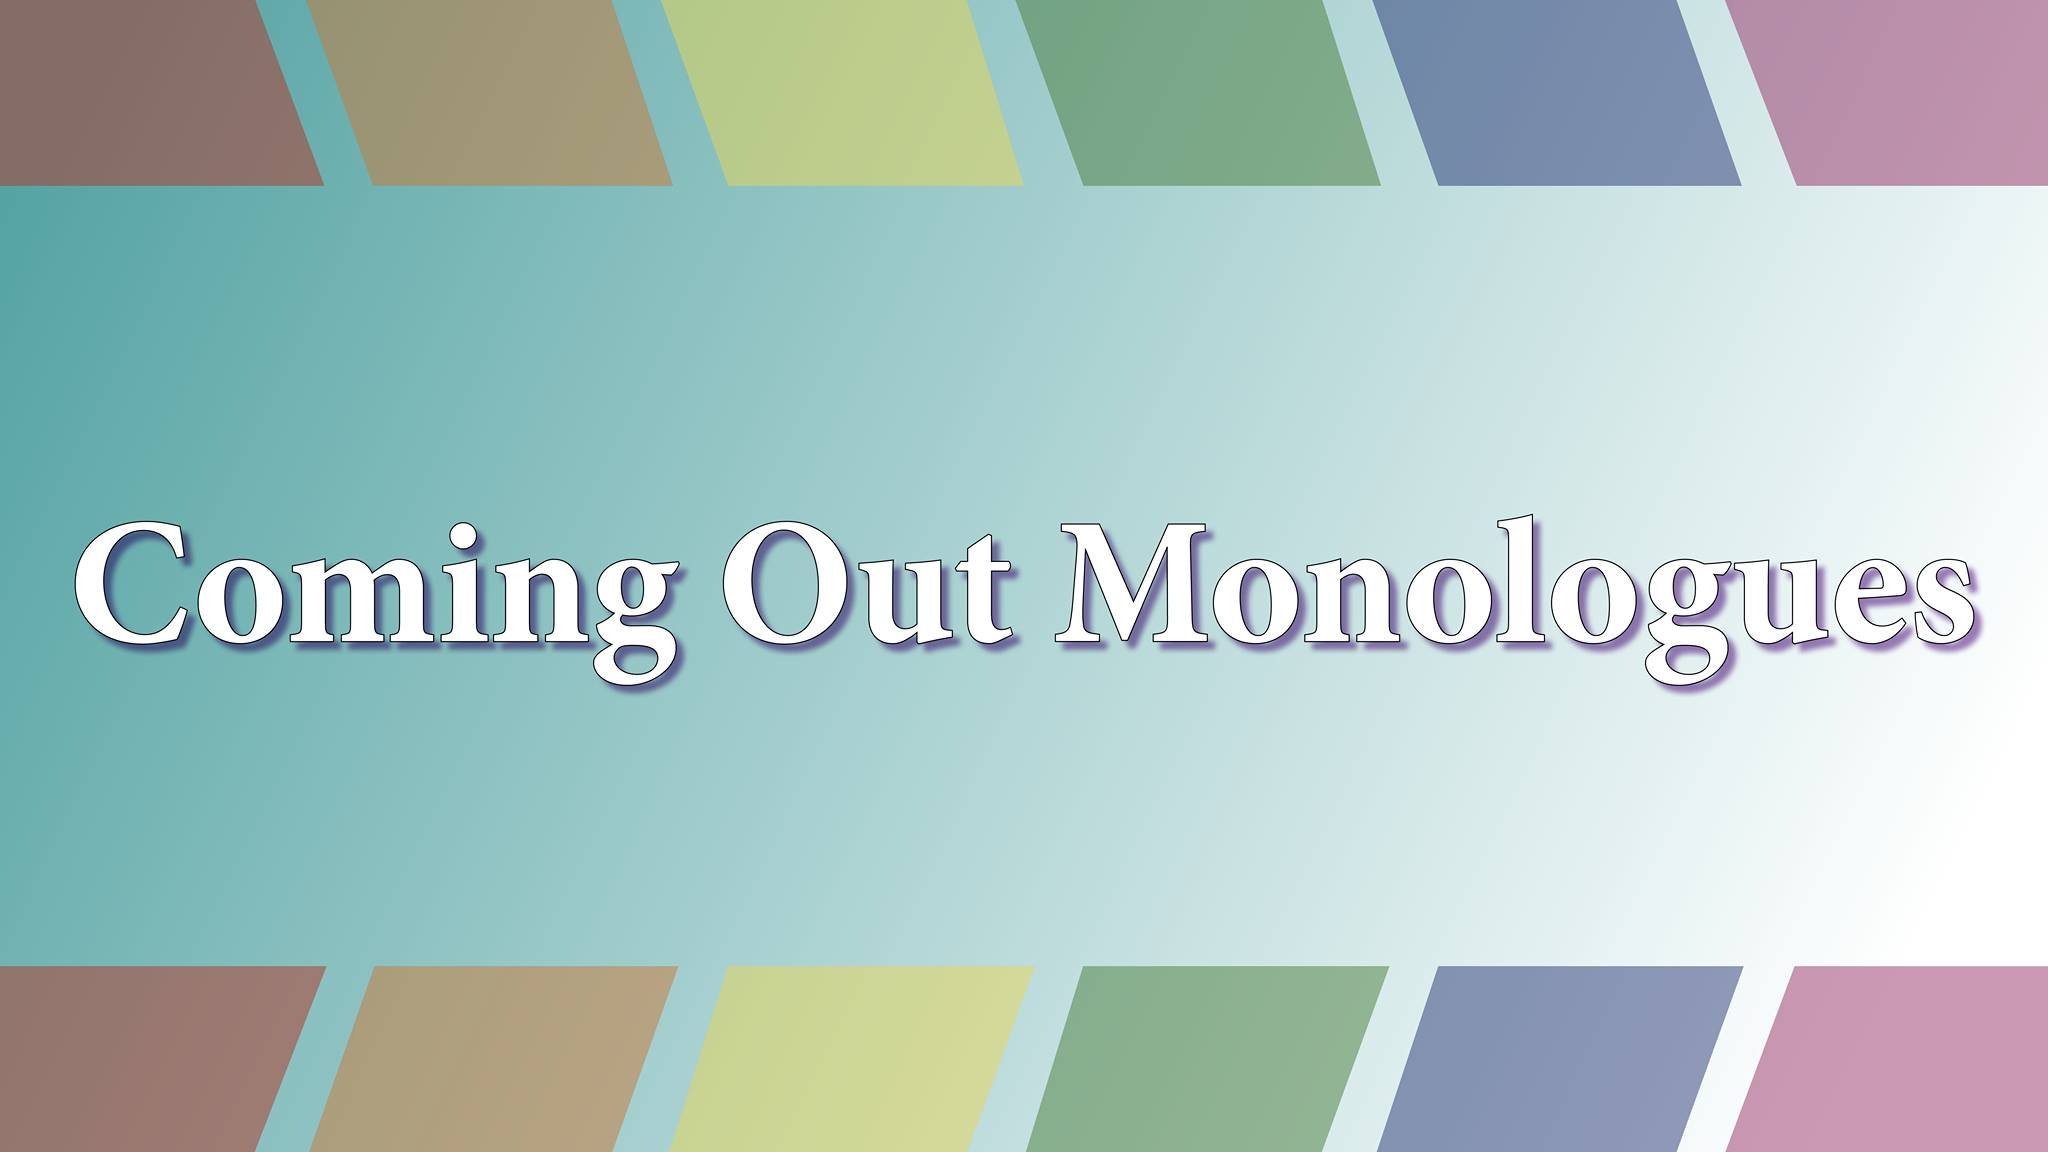 Copy of Coming Out Monologues, YYC at Lethbridge Pride!